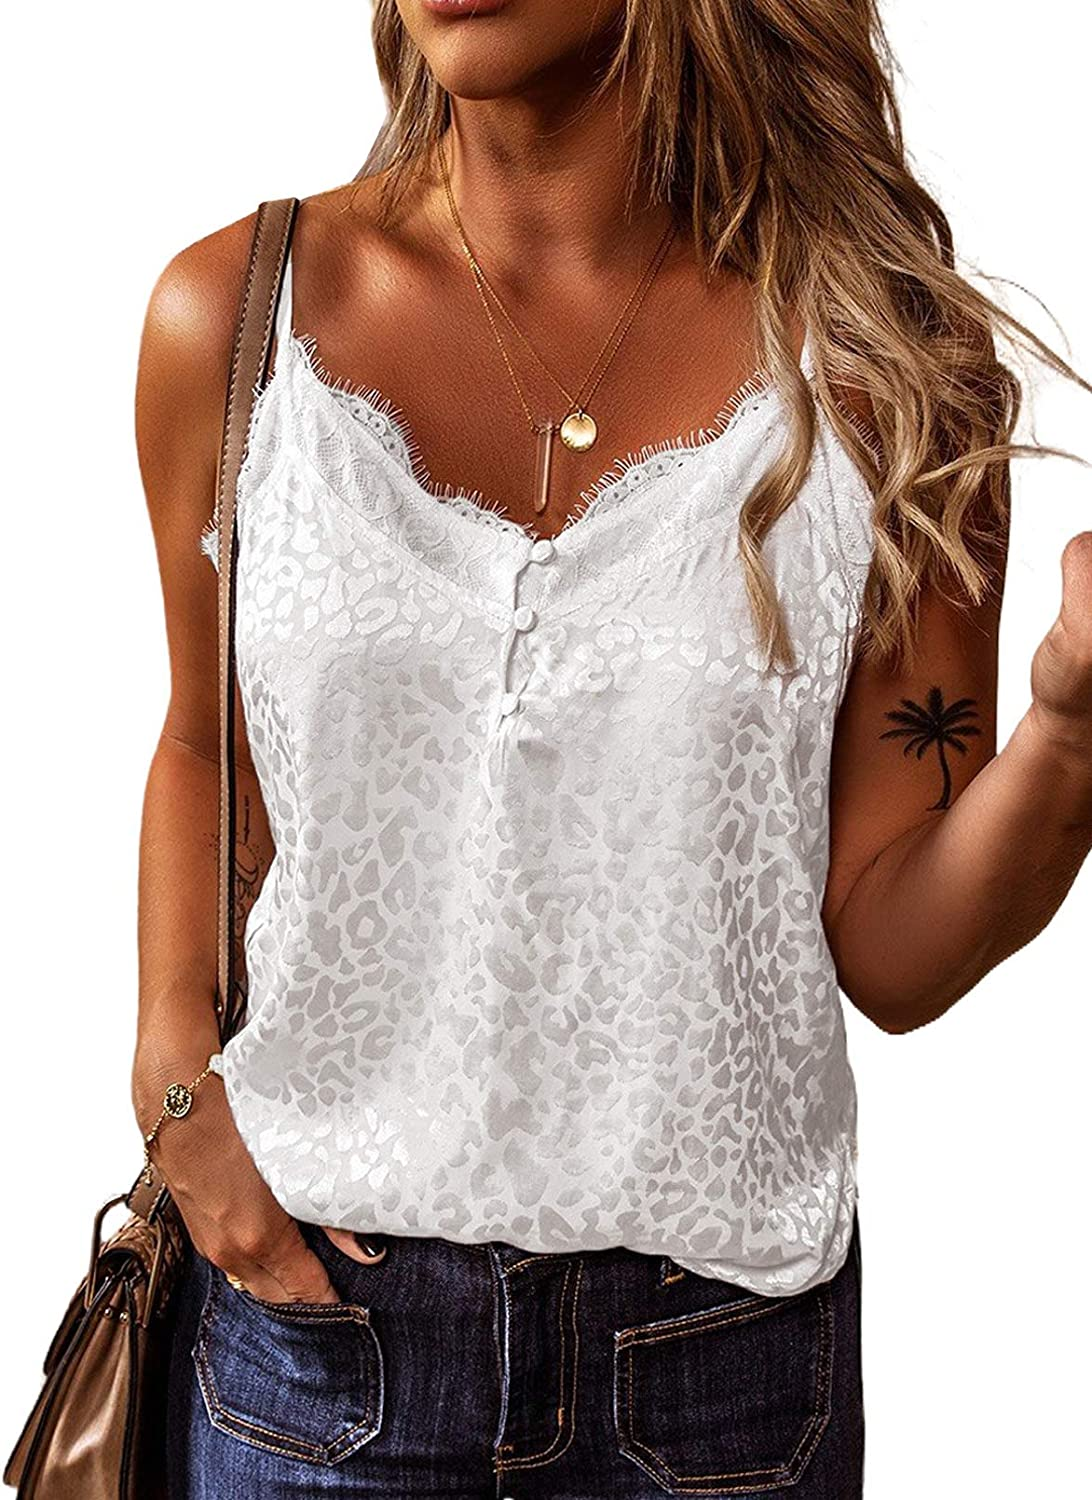 ROSKIKI Women's Casual Buttoned Sleeveless Shirt Solid Color Print Backless Cami Tanks Tops